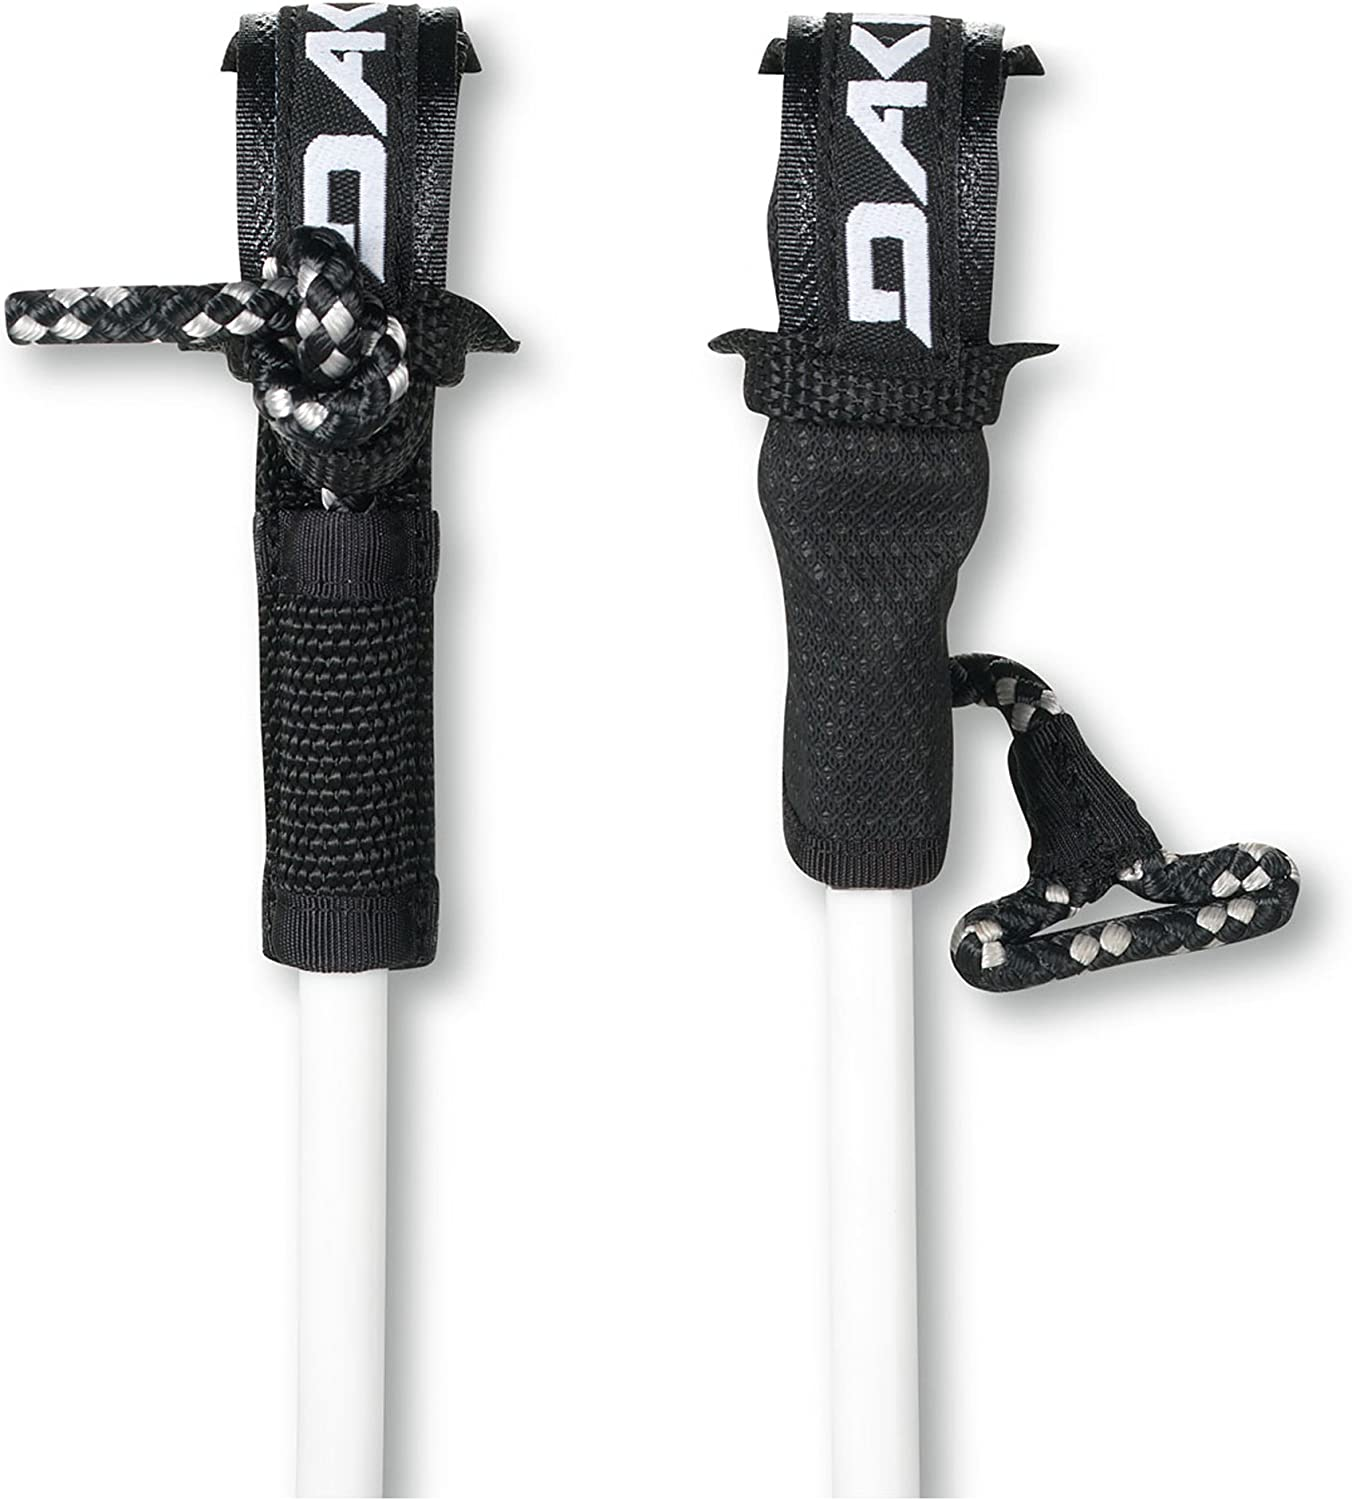 Dakine Unisex Comp Adjustable 24-32 Harness Lines